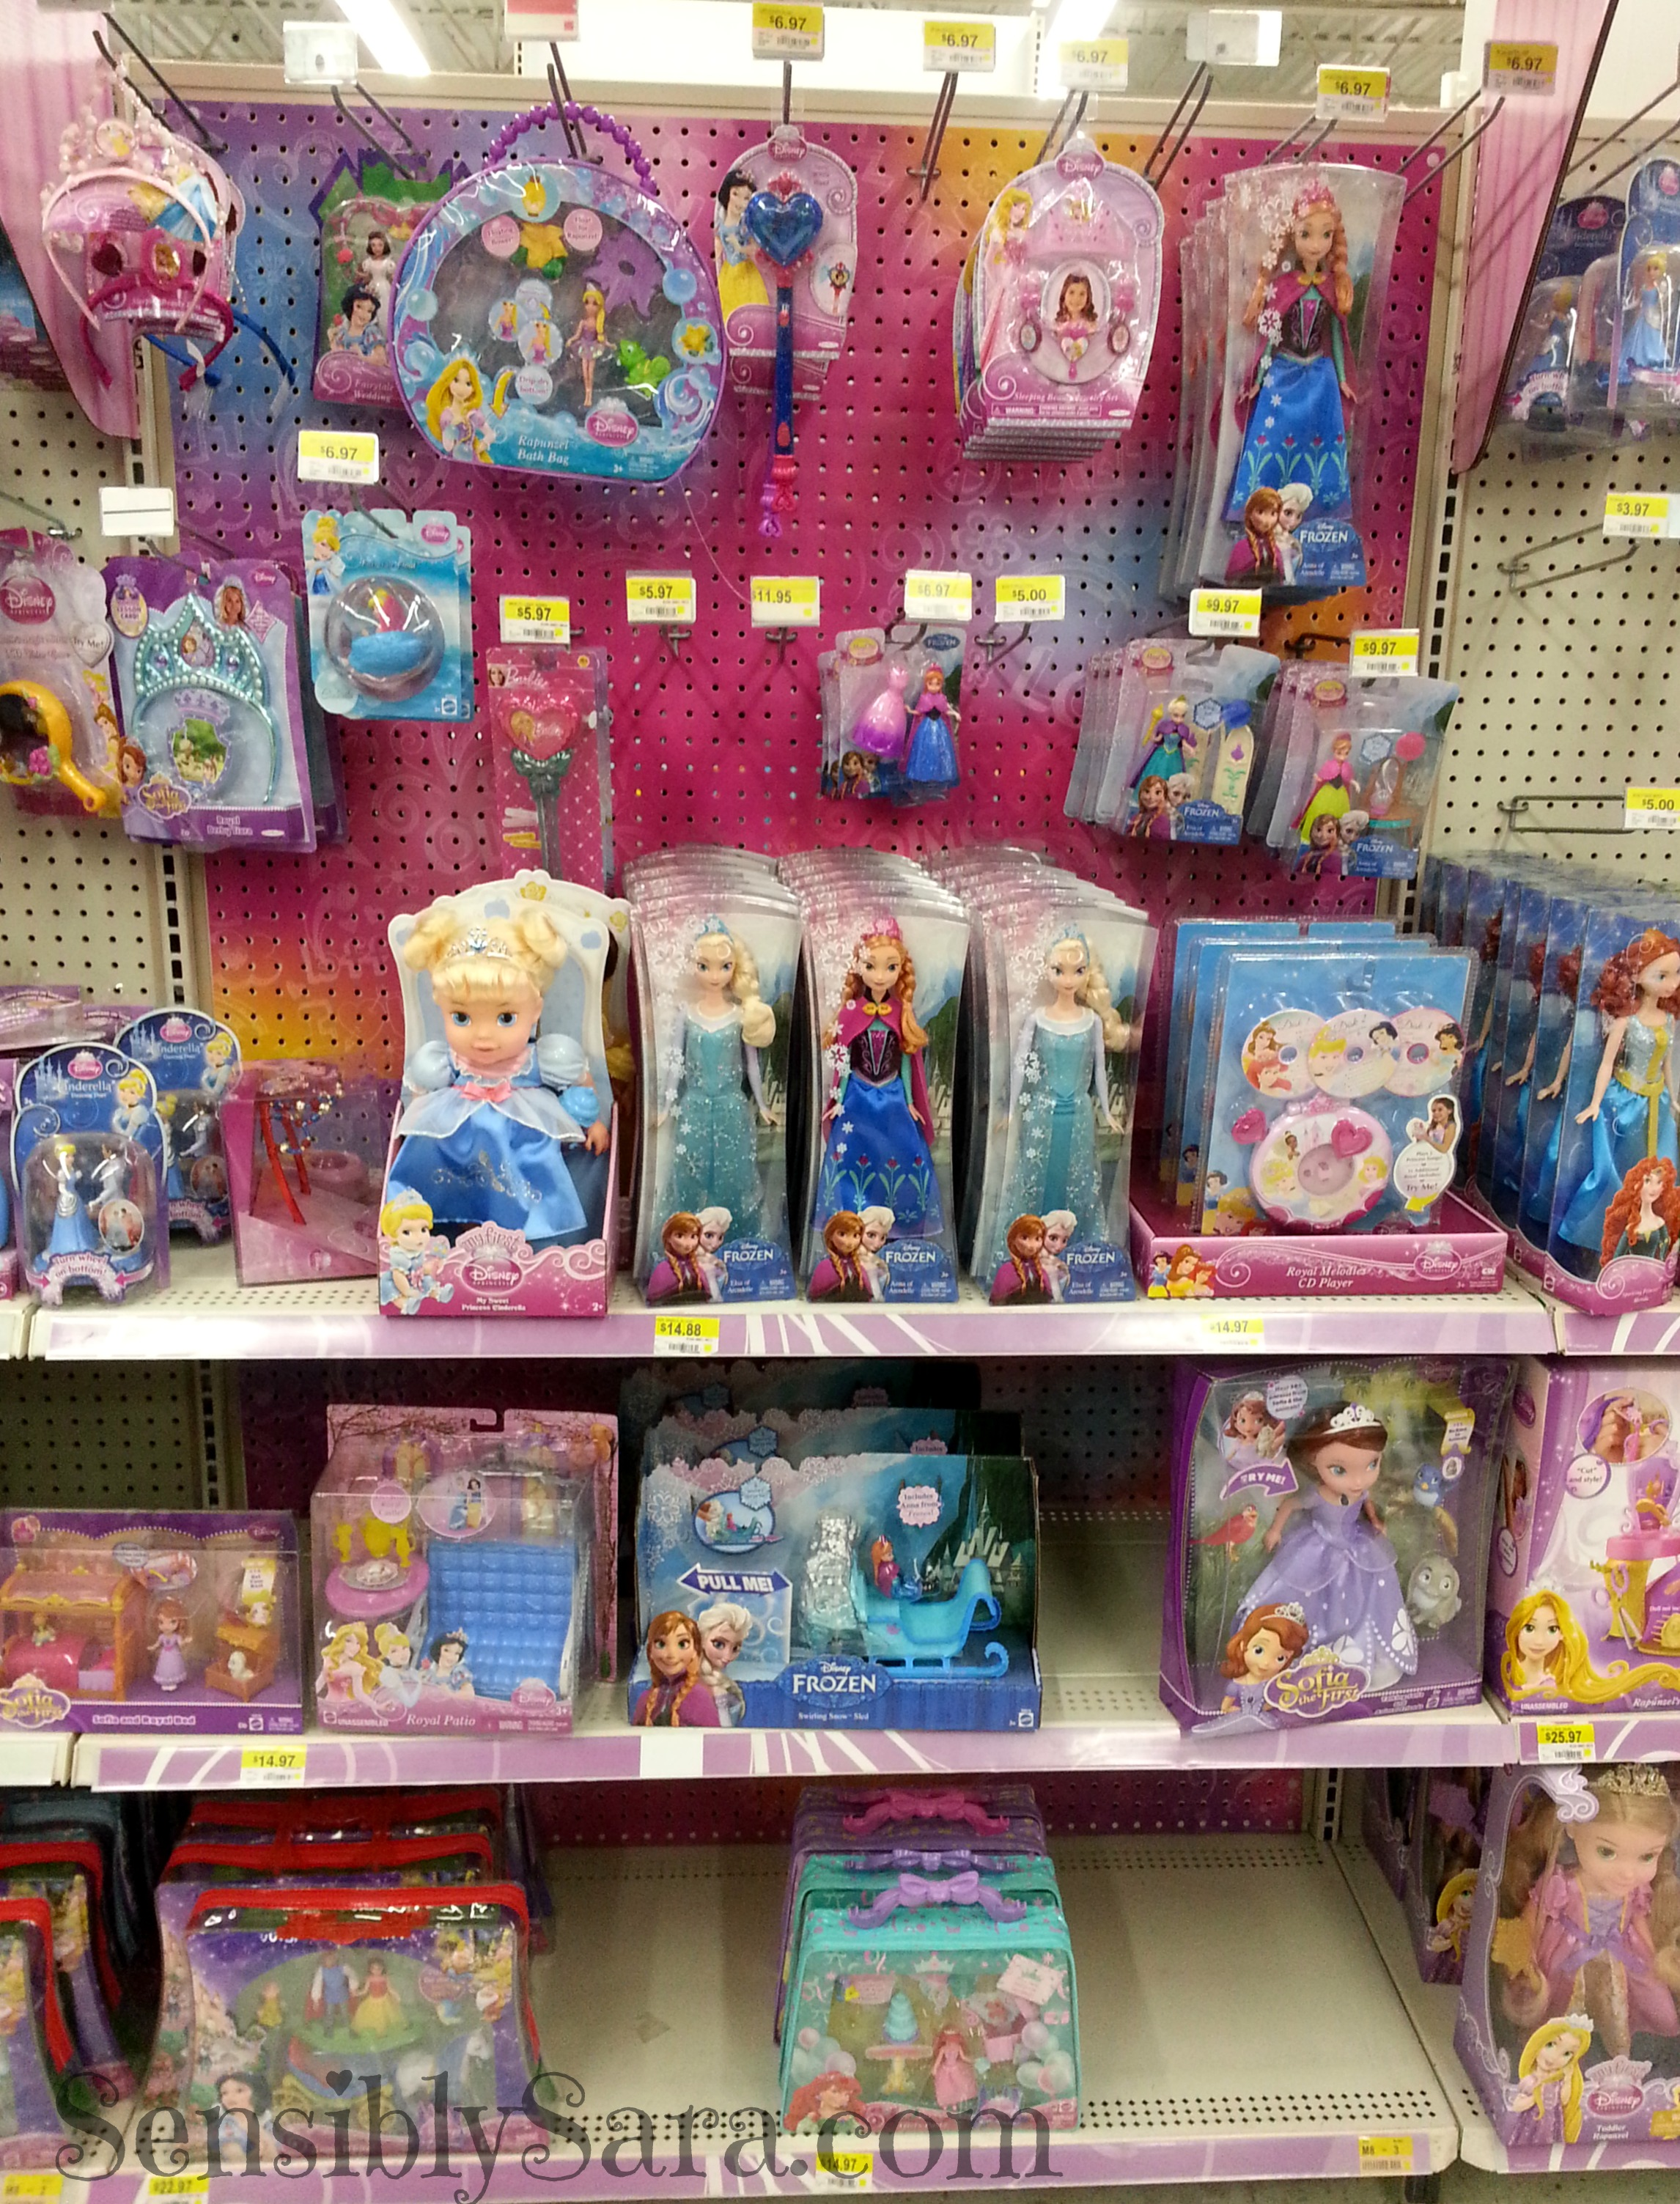 Toys For Girls From Walmart : Disney frozen toys not just for girls frozenfun shop